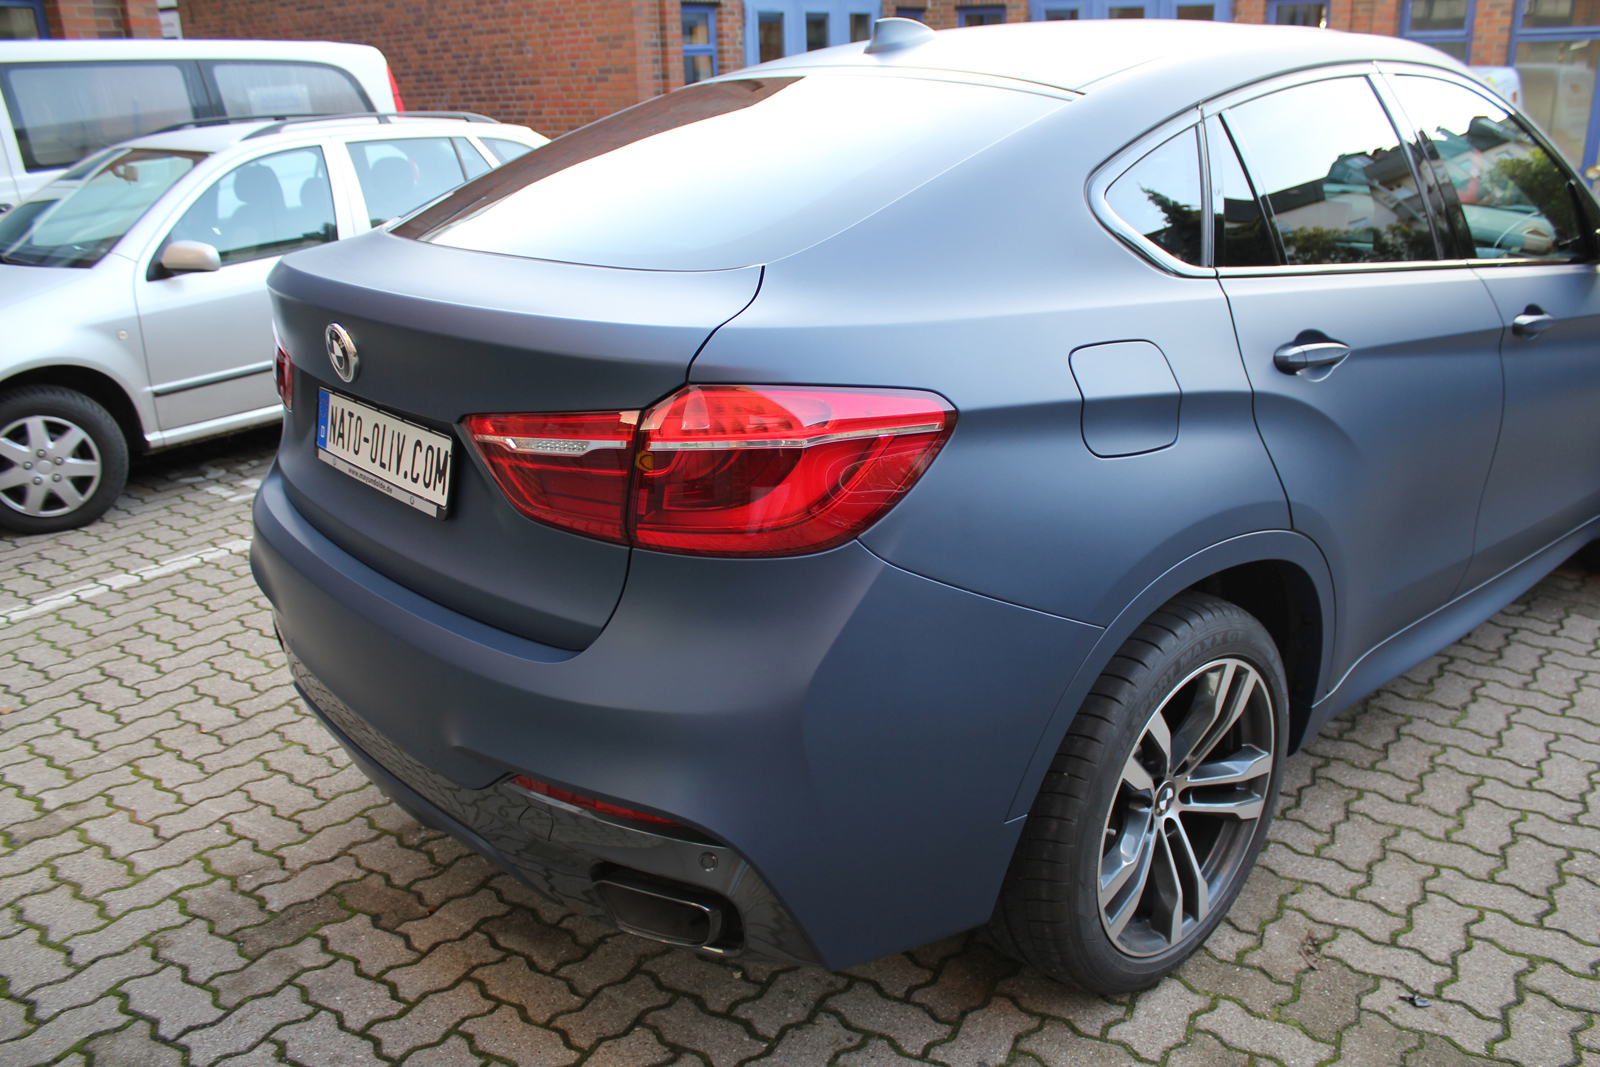 BMW_X6_CAR-WRAPPING_YACHTBLAU_MATT_04